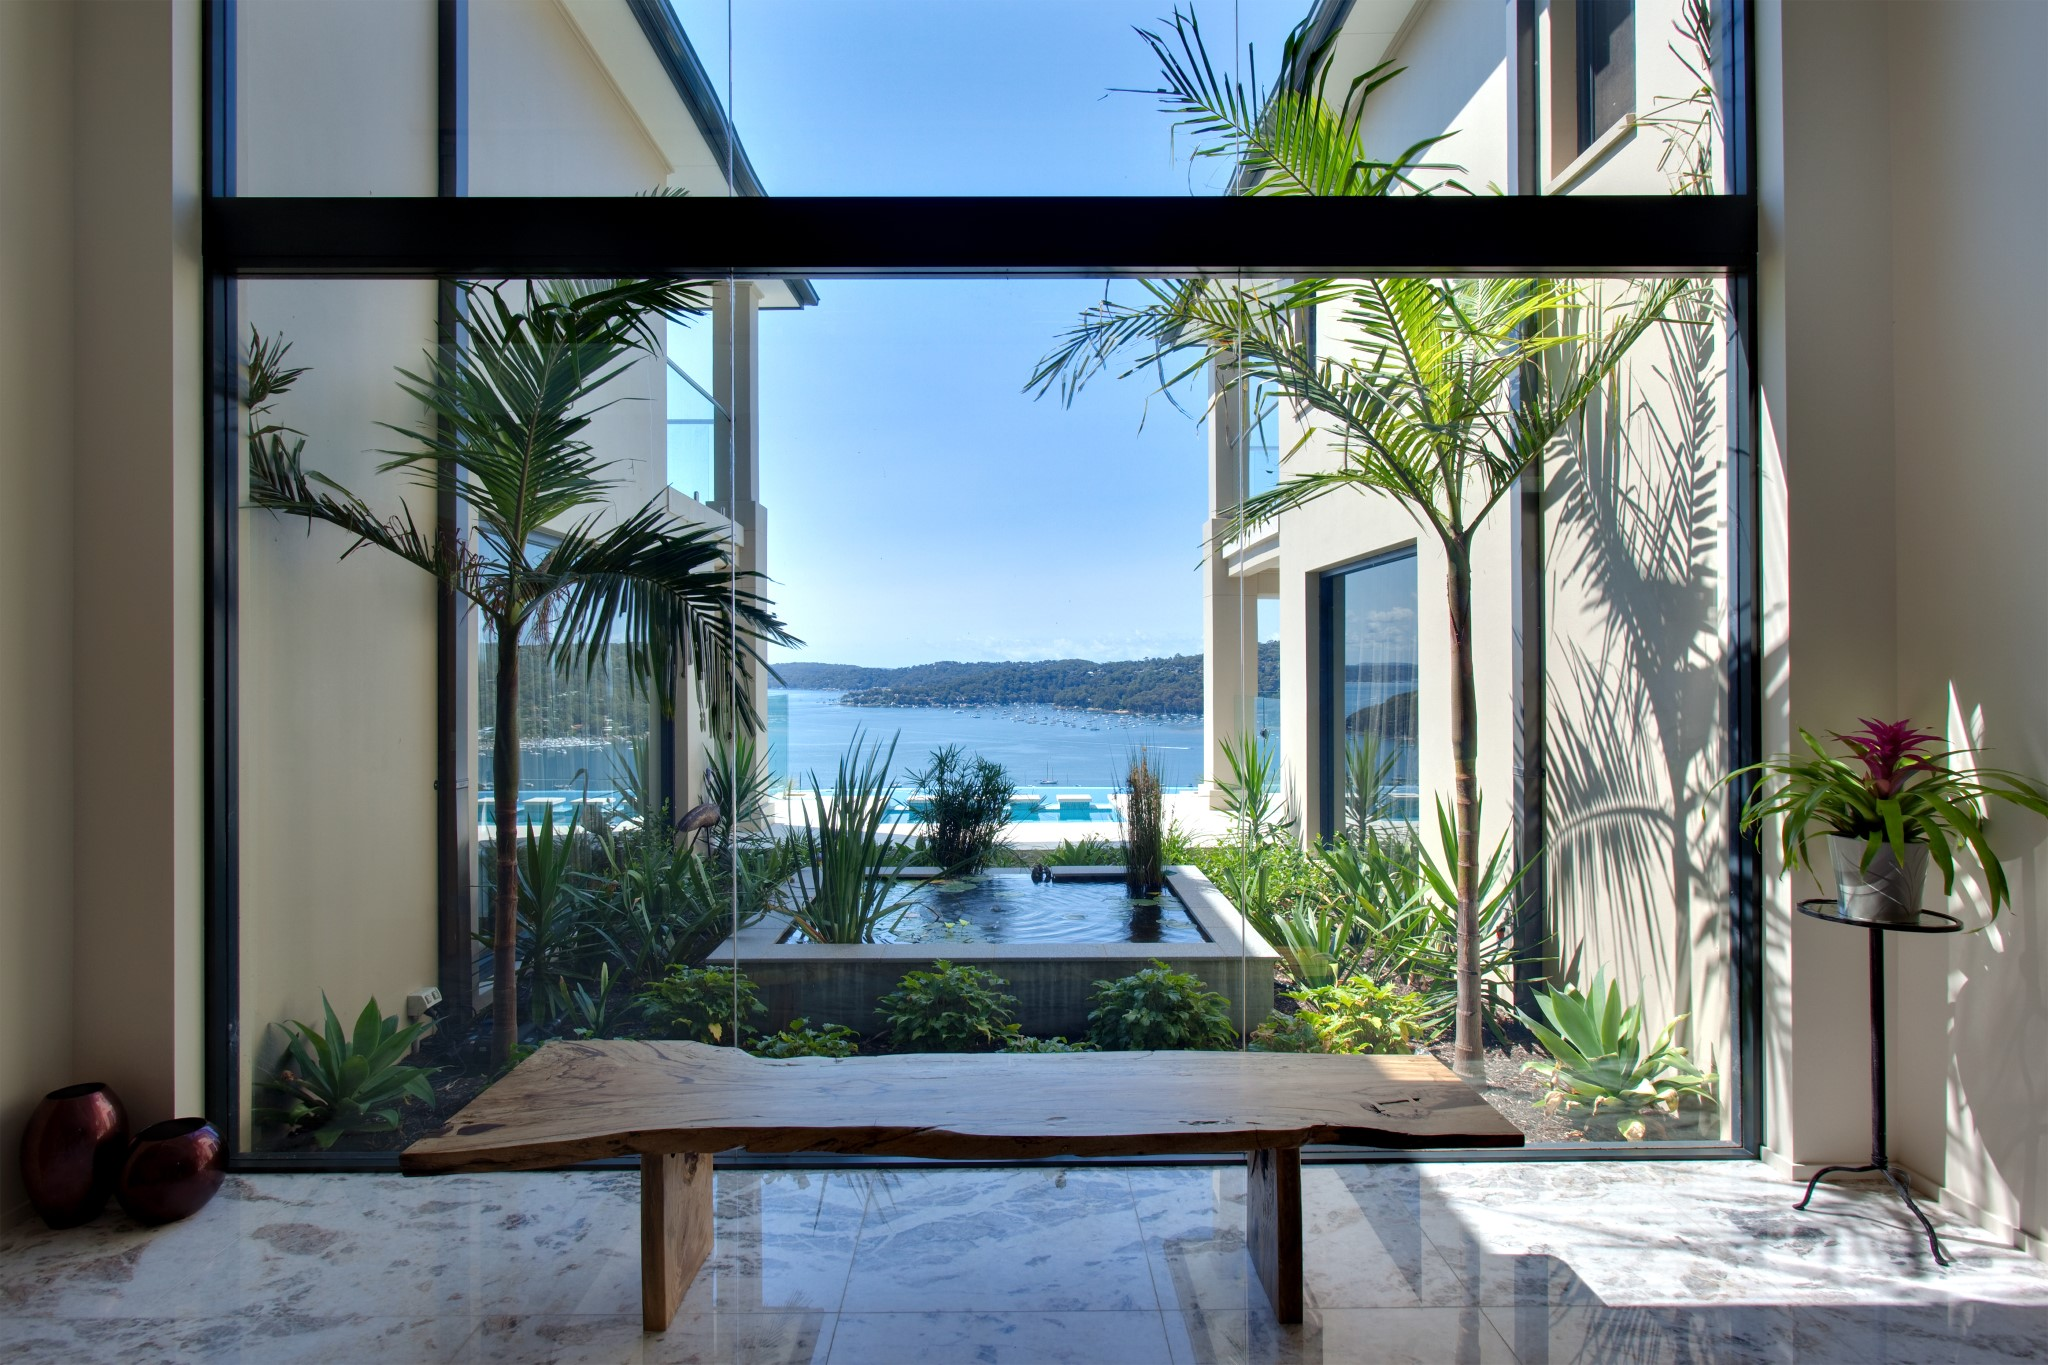 Plunge Pool as a décor of the luxury house